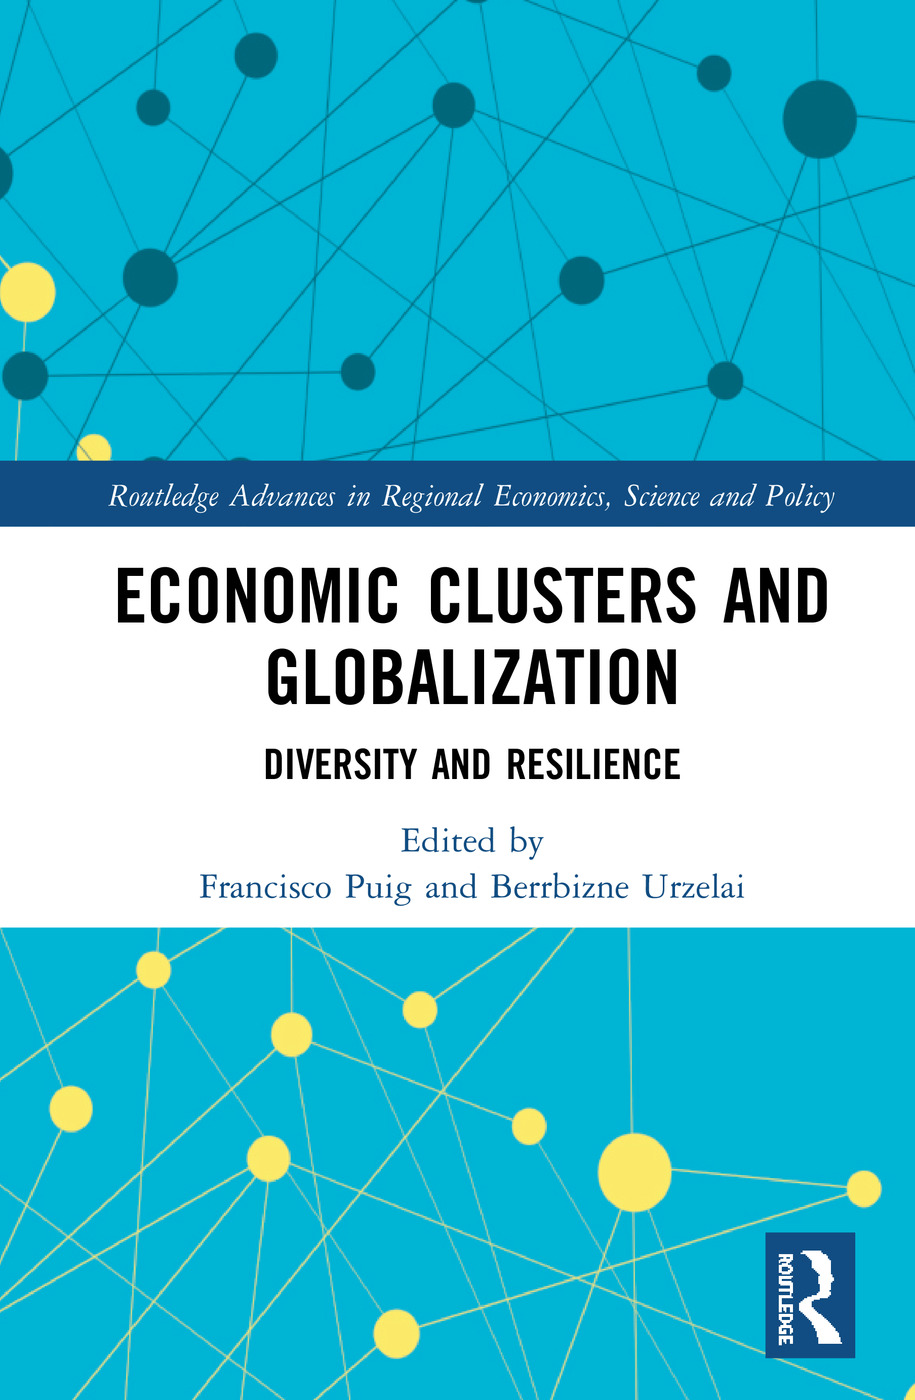 Economic Clusters and Globalization: Diversity and Resilience book cover